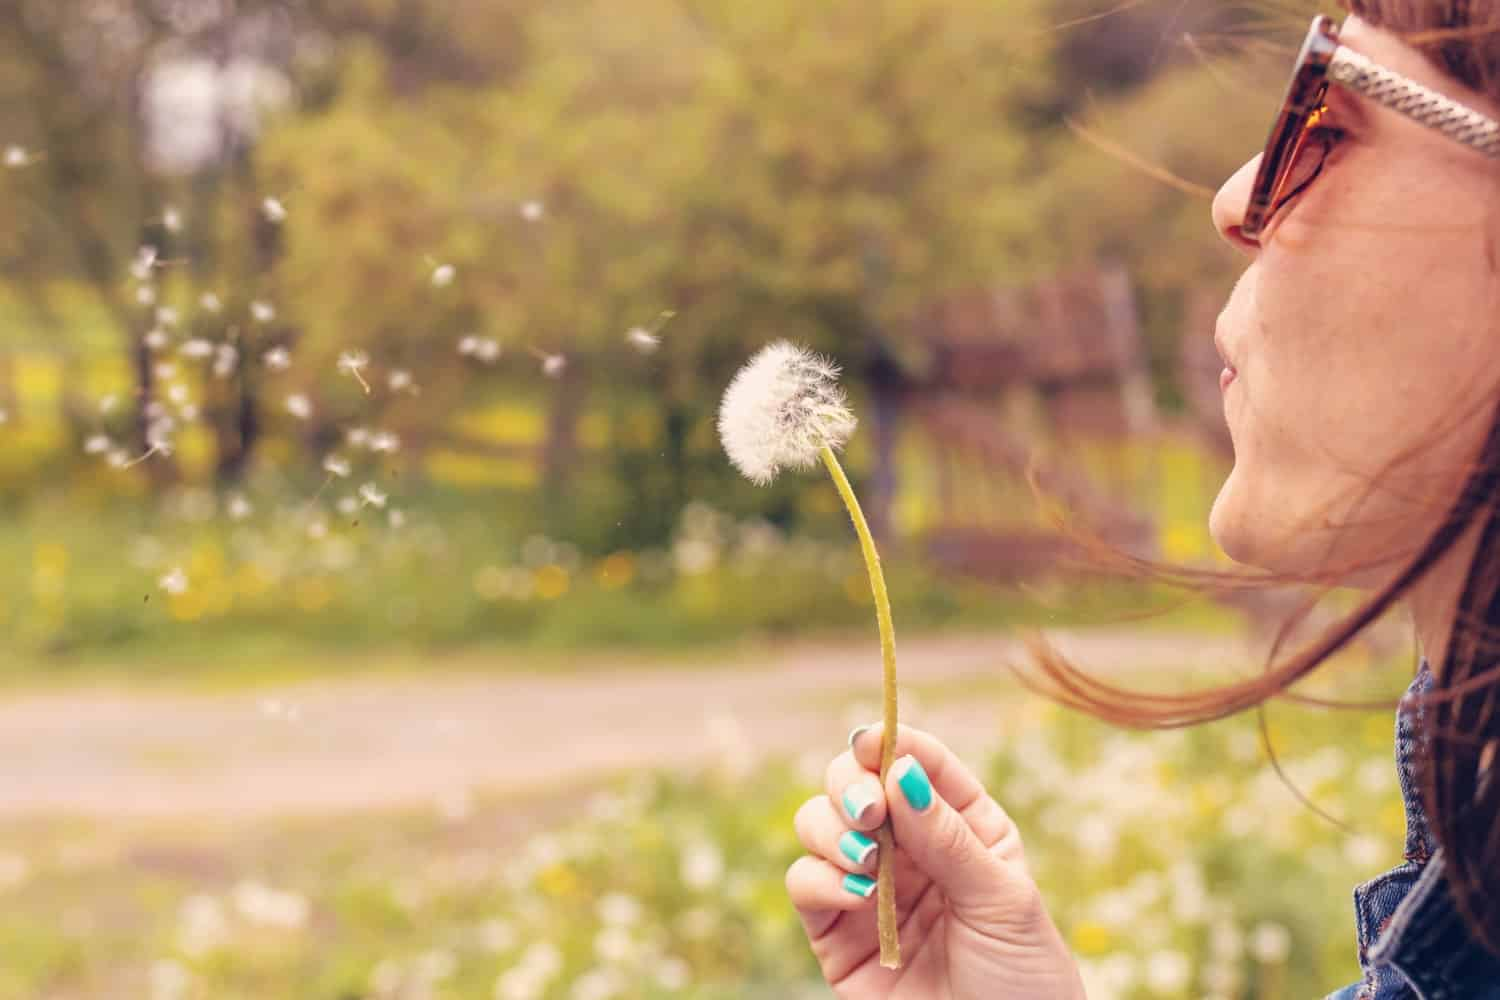 How To Let Go Of Resentment And Anger